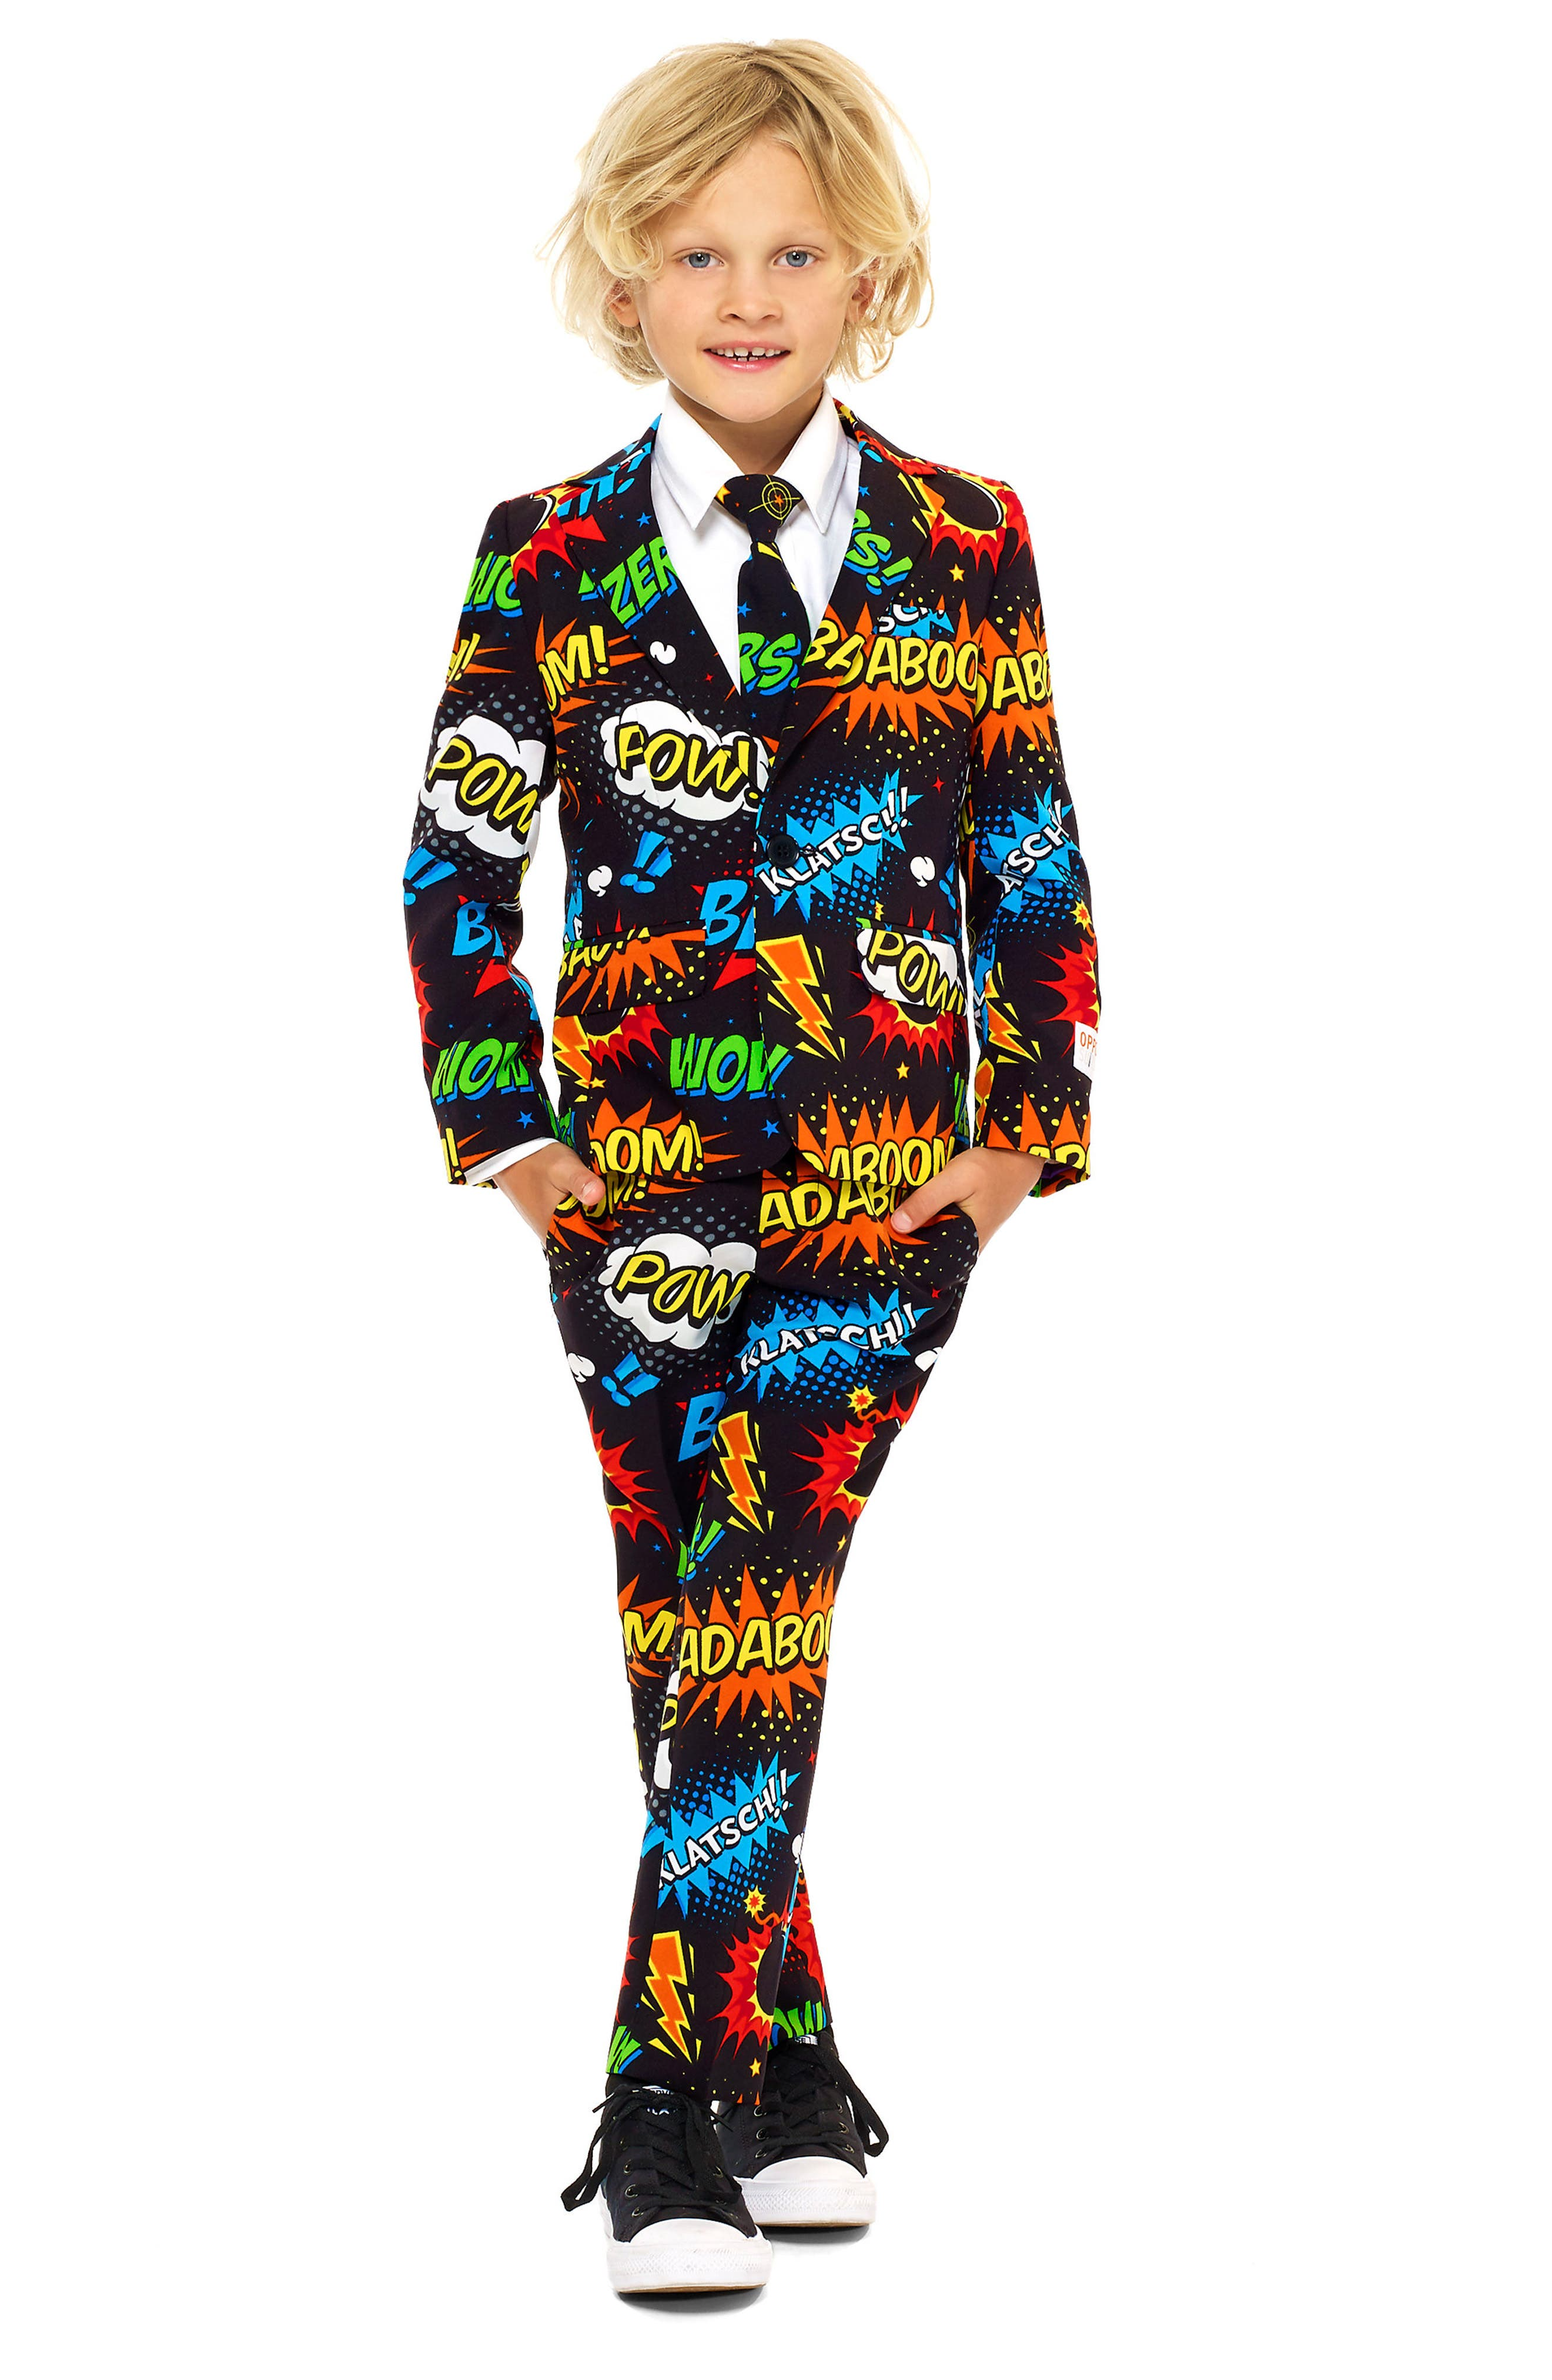 Oppo Badaboom Two-Piece Suit with Tie,                         Main,                         color, Miscellaneous